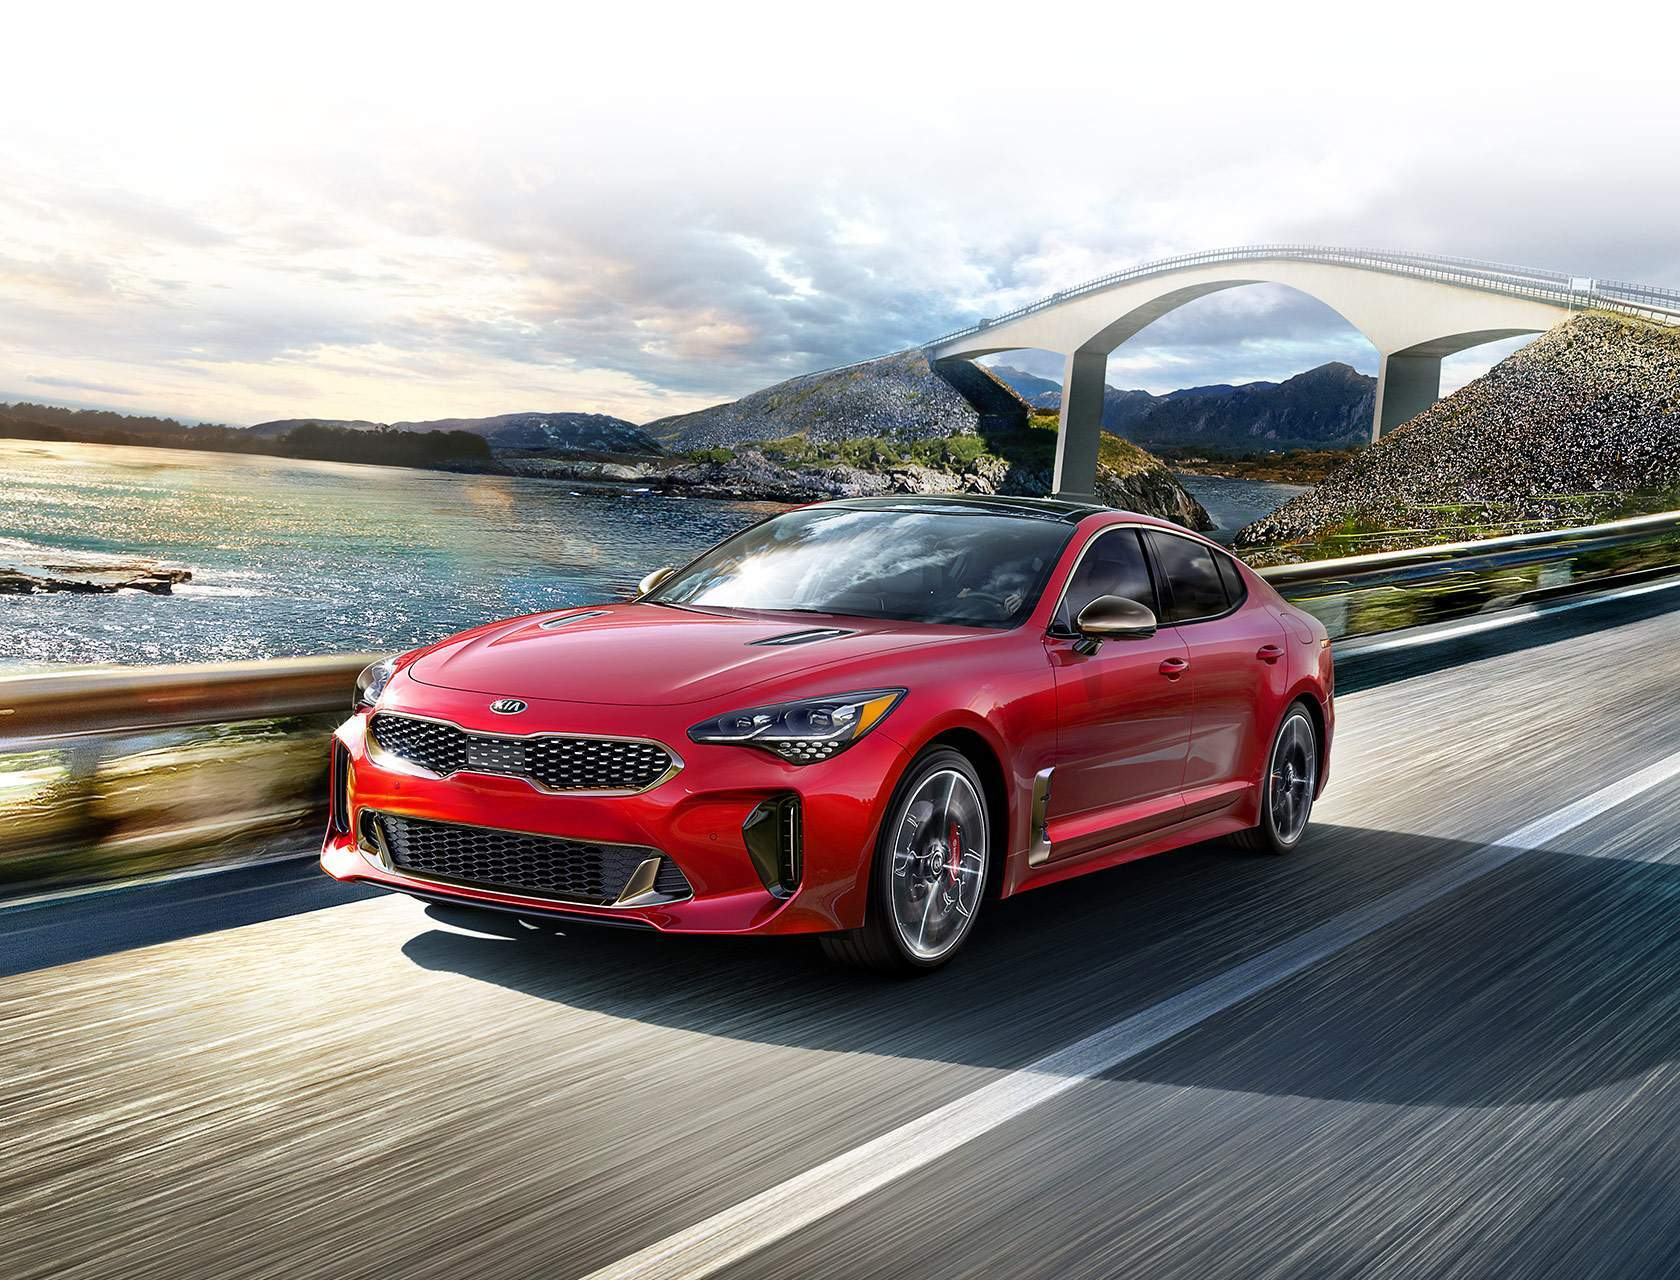 2018 Kia Stinger in Fort Worth, TX